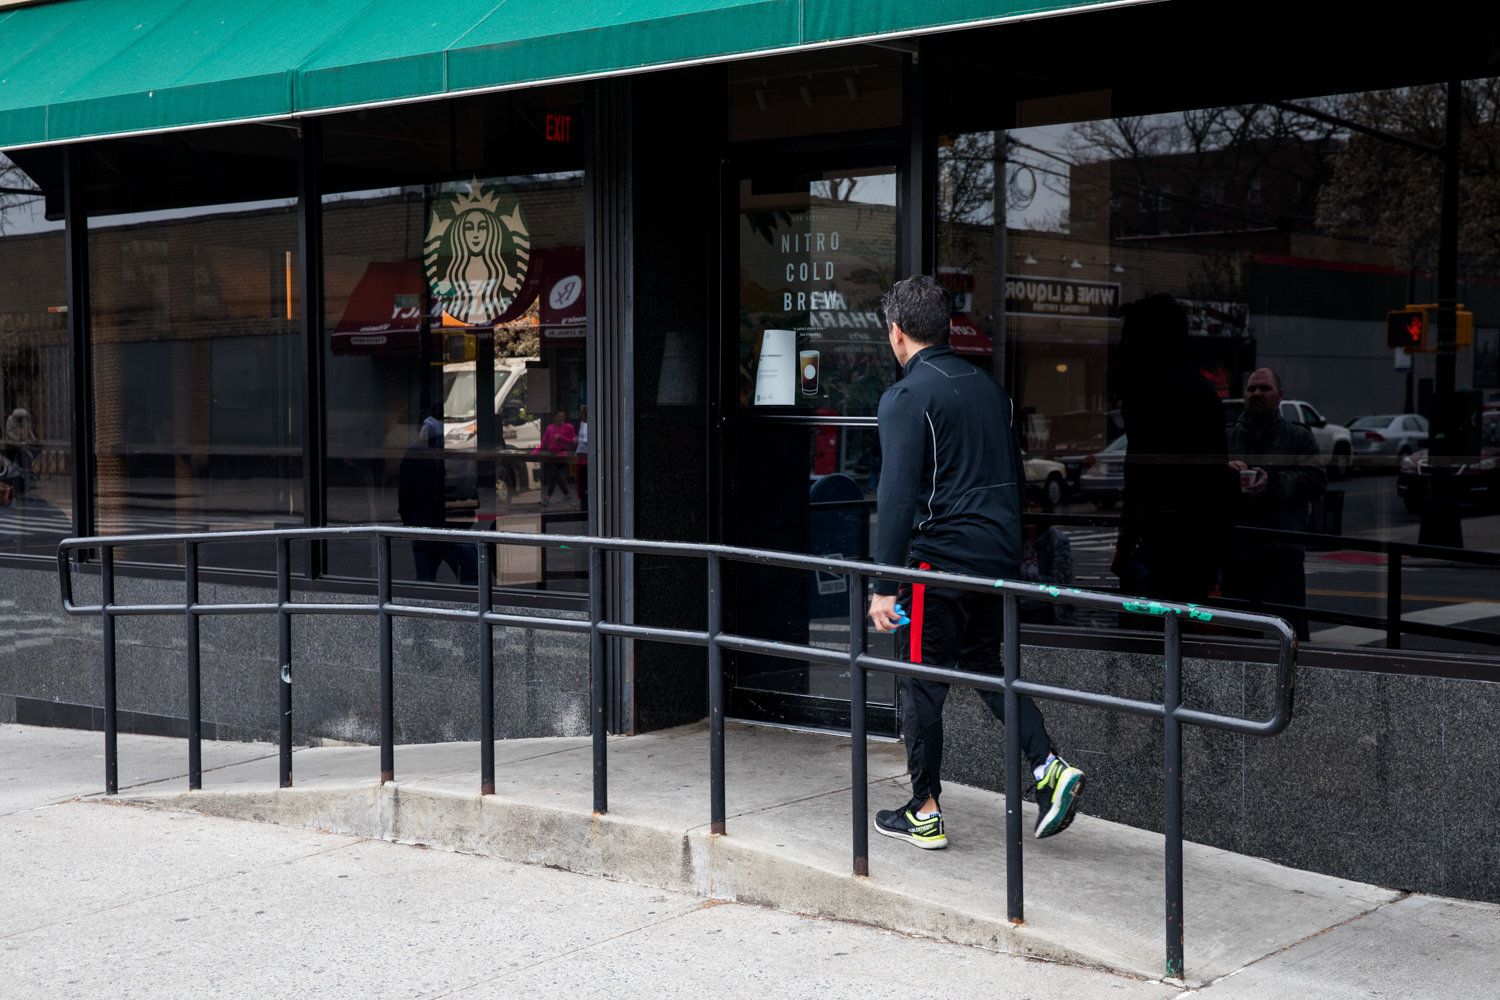 A pedestrian walks to Starbucks on Johnson Avenue to find it has closed, a corporate victim of the coronavirus pandemic.